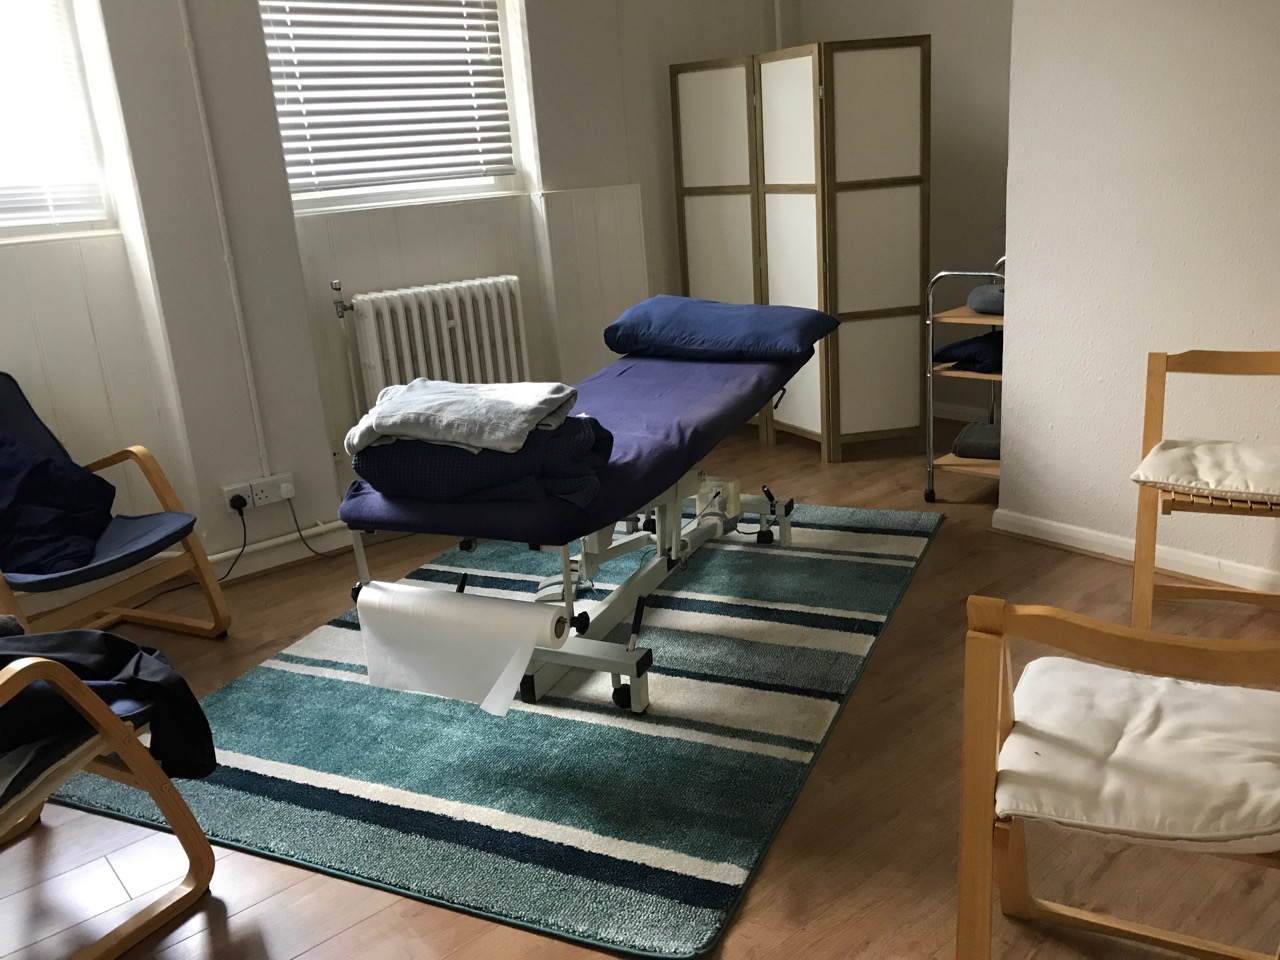 Treatment room at The Open Door